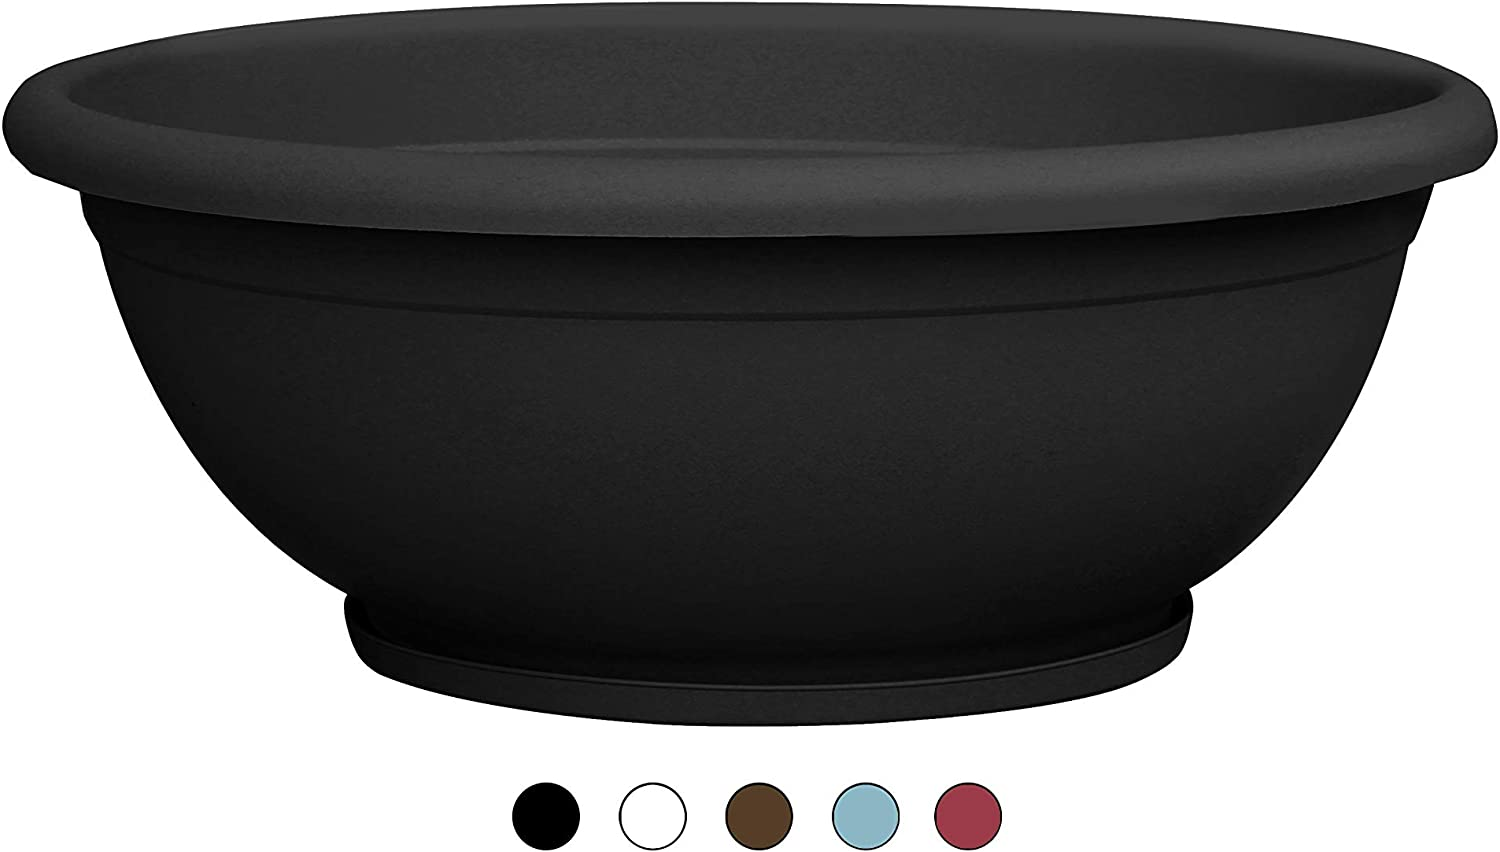 """TABOR TOOLS Plastic Planter Bowl, Garden Bowl for Indoor and Outdoor Use, Round. VEN303A. (12"""", Black)"""